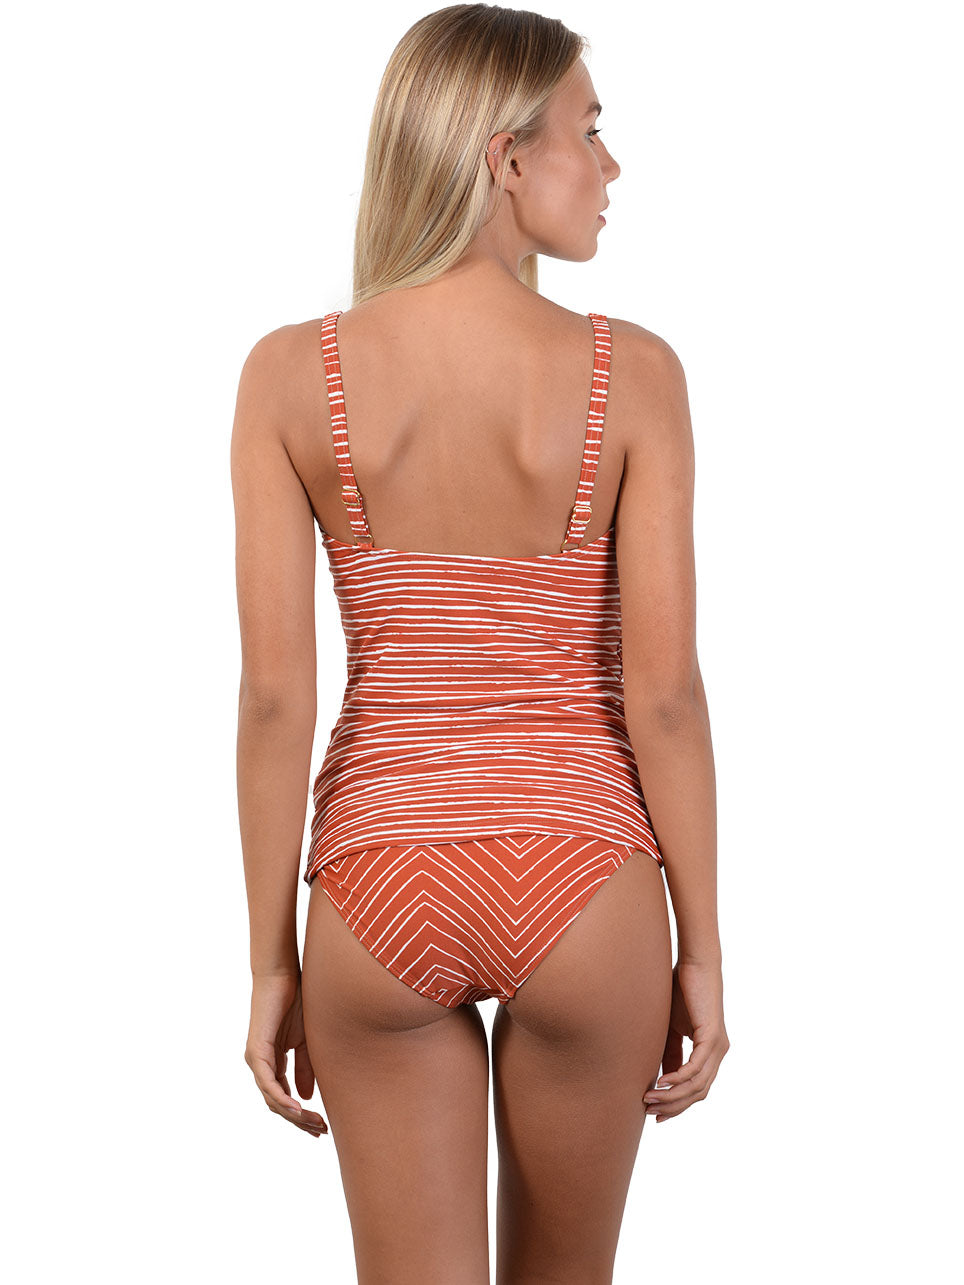 Back view of Sahara D-E Cup Ruched Singlet Bikini Top in Spice